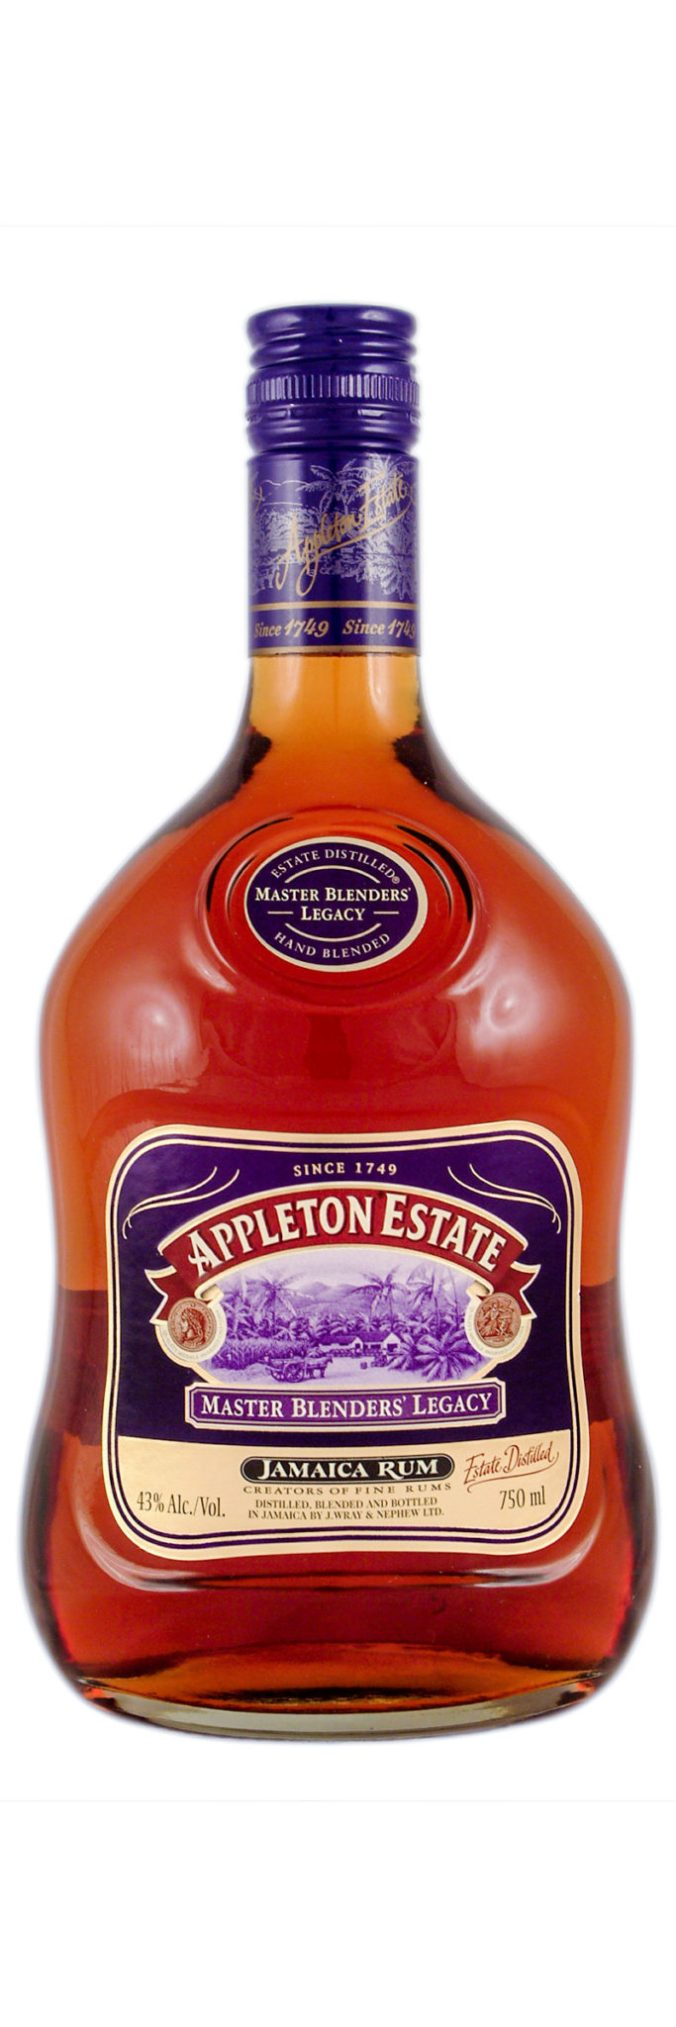 Appleton Estate Master Blenders